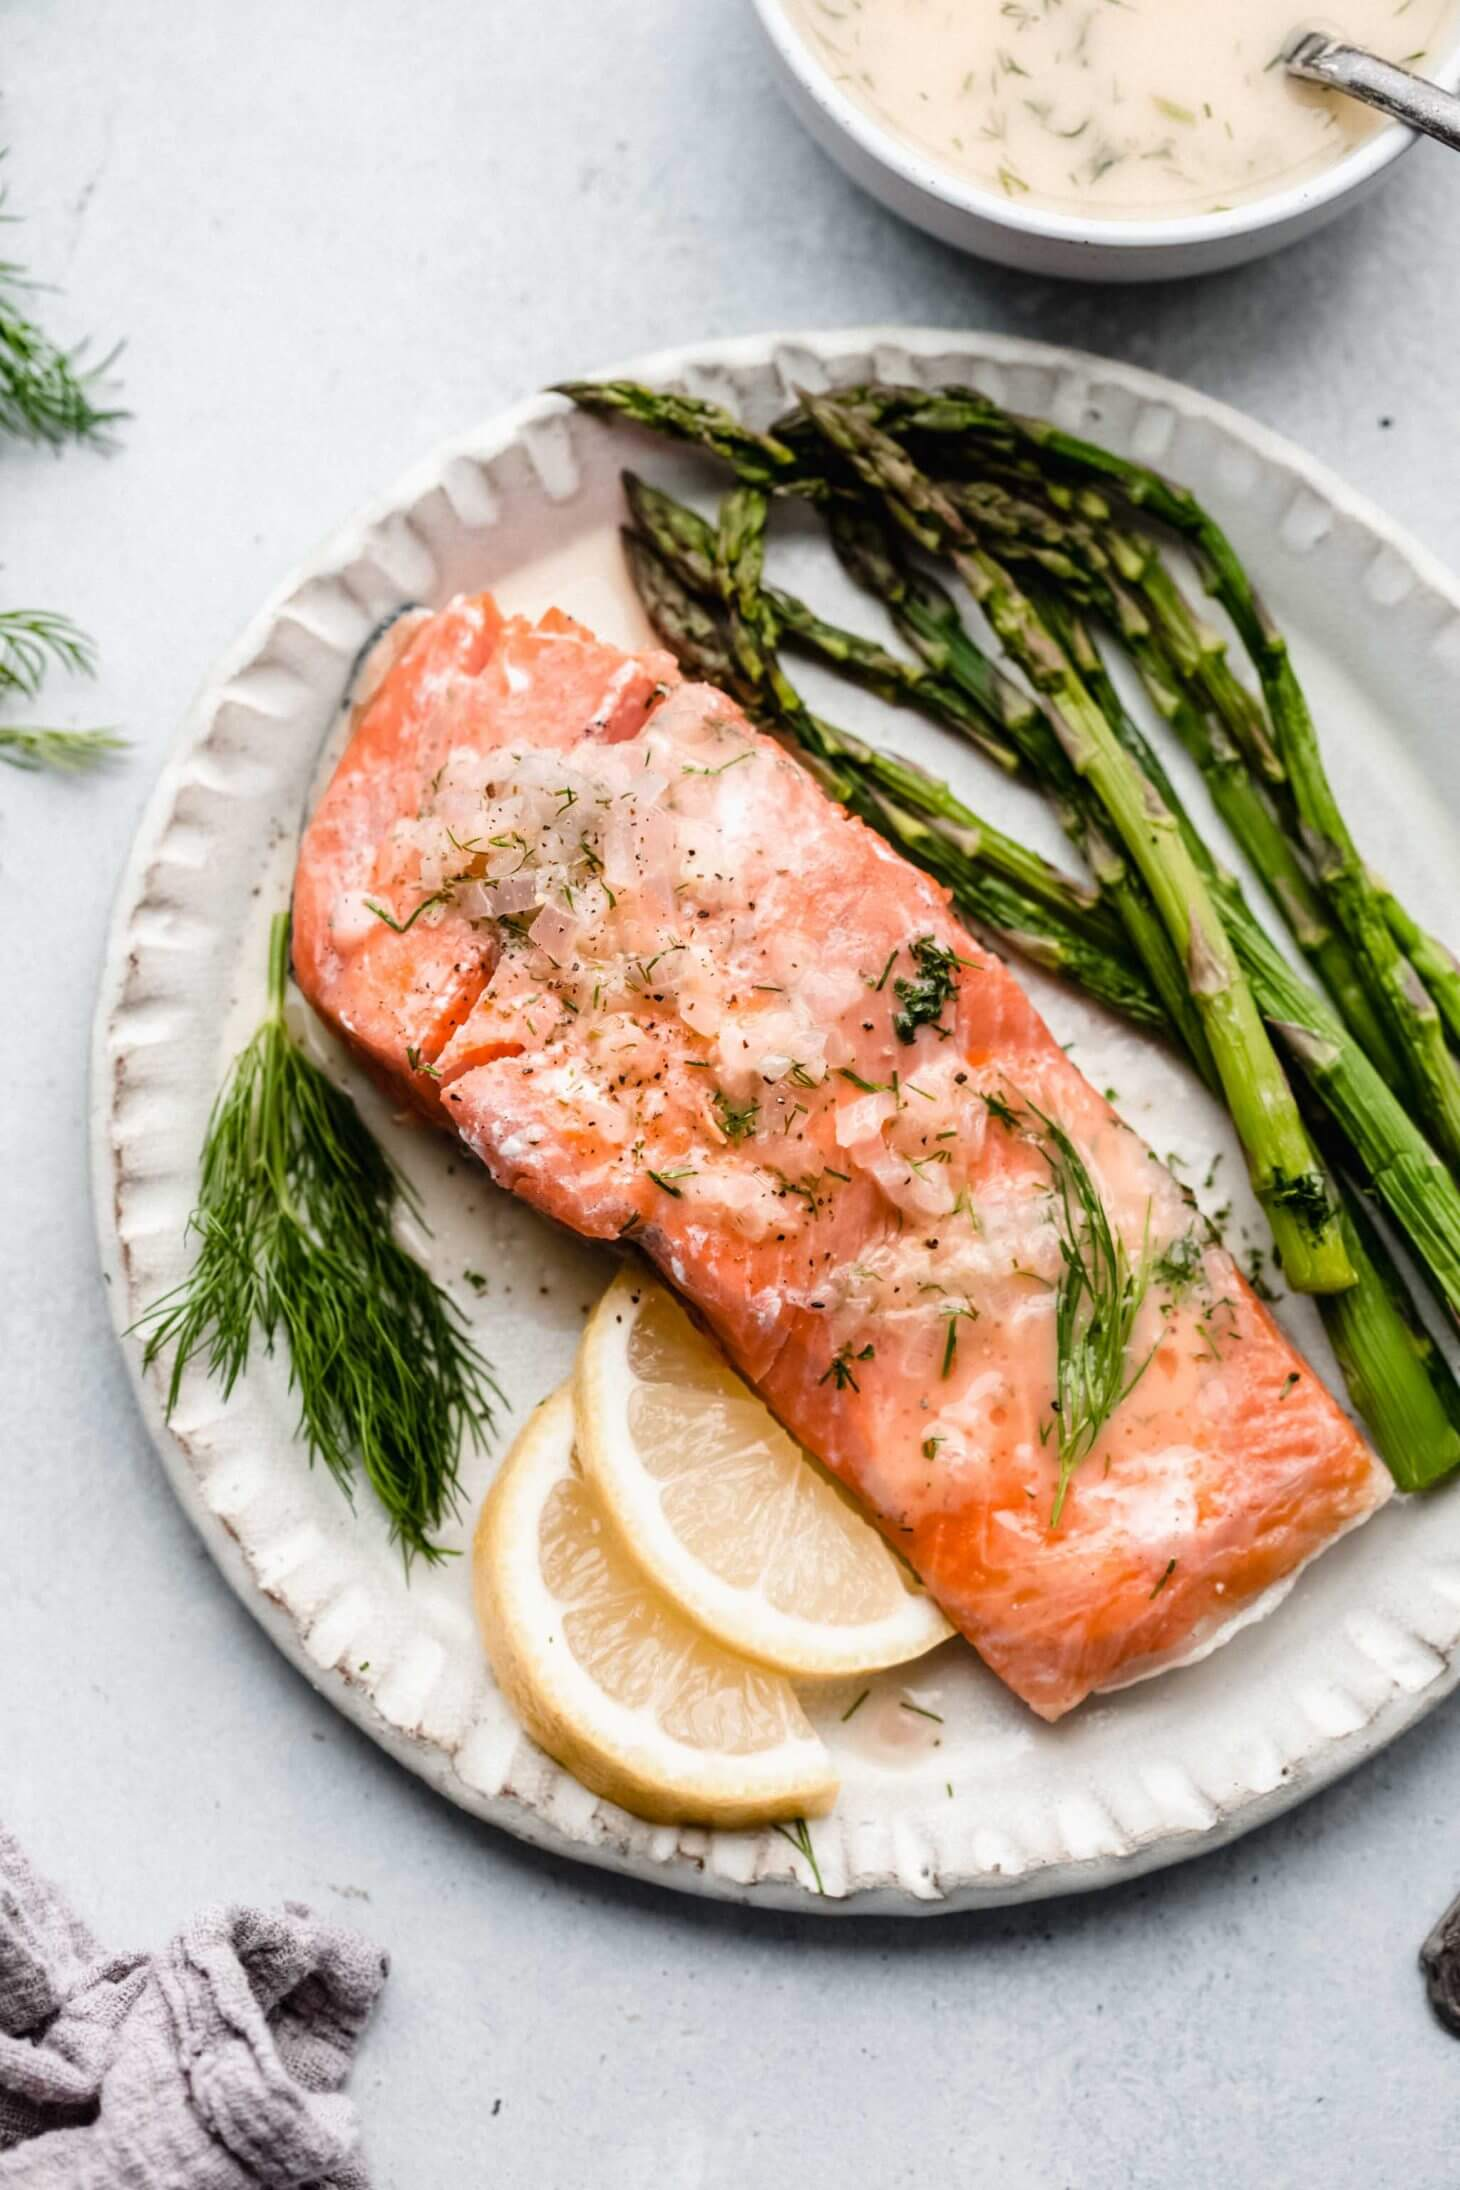 salmon with asparagus and lime wedges on white plate